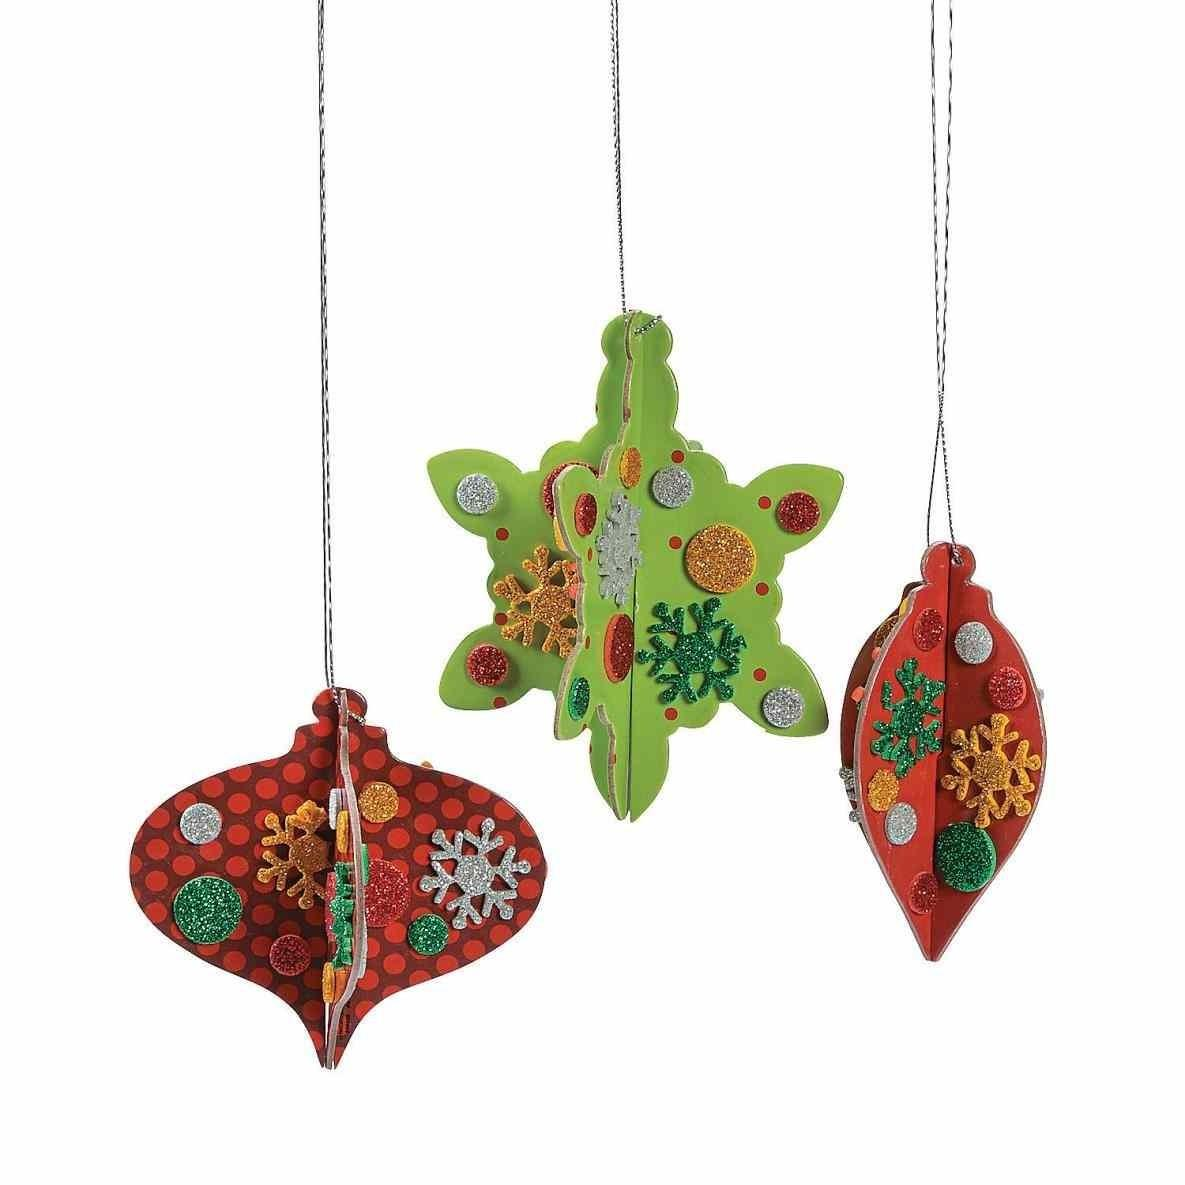 Diy Homemade Gifts Presents Christmas Ornament Craft